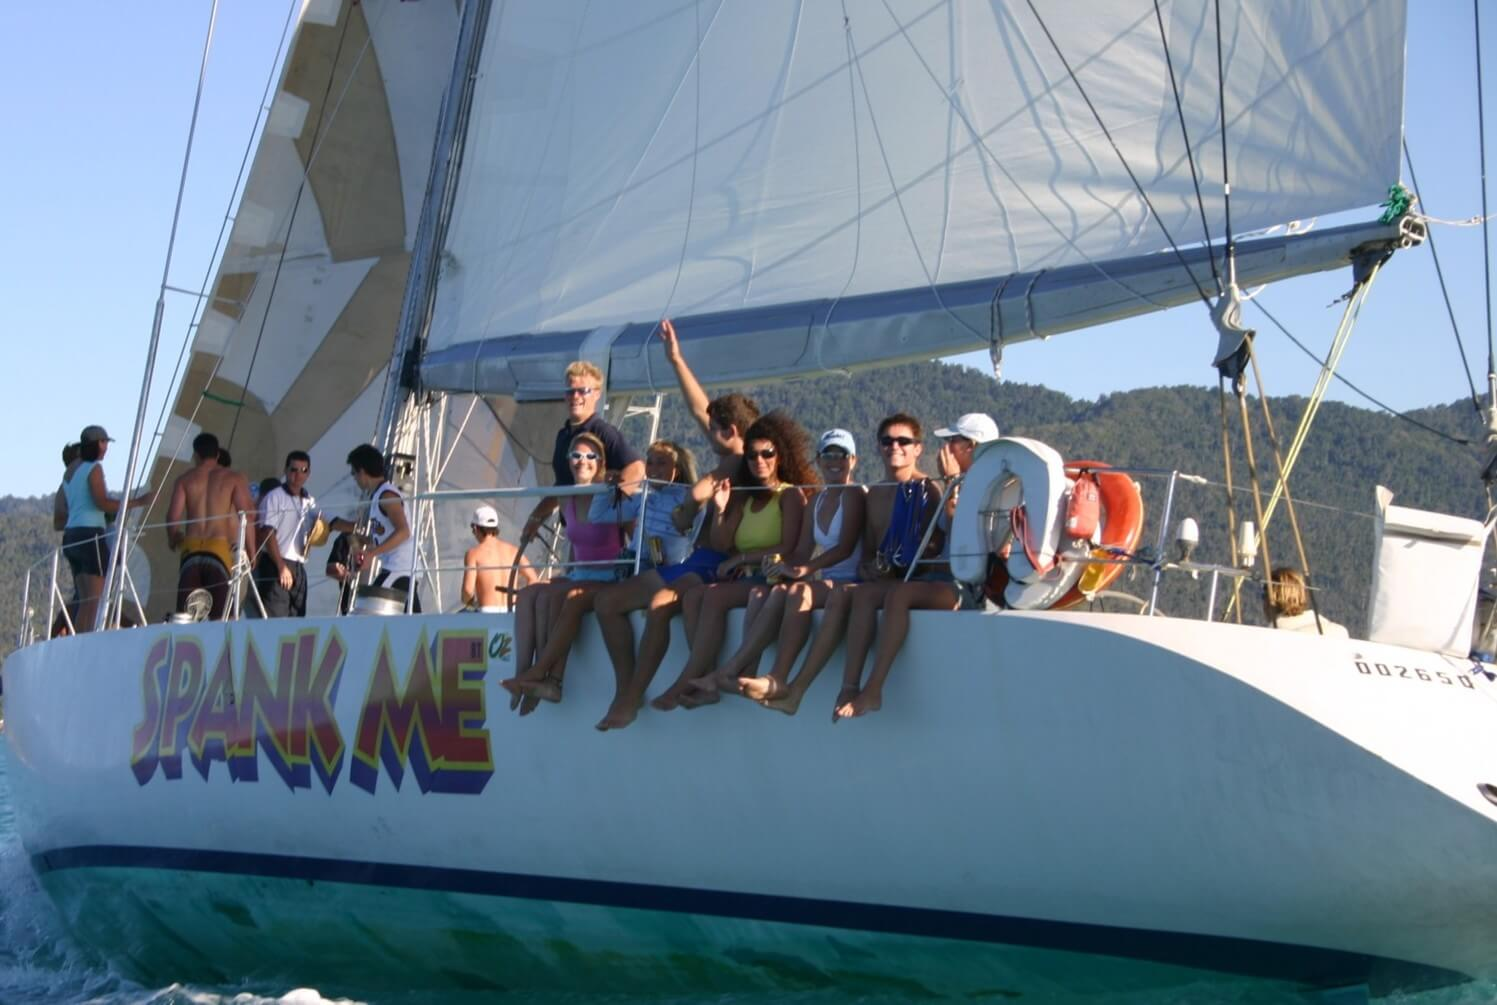 Spank Me Whitsundays Overnight Tour | SailingWhitsundays com